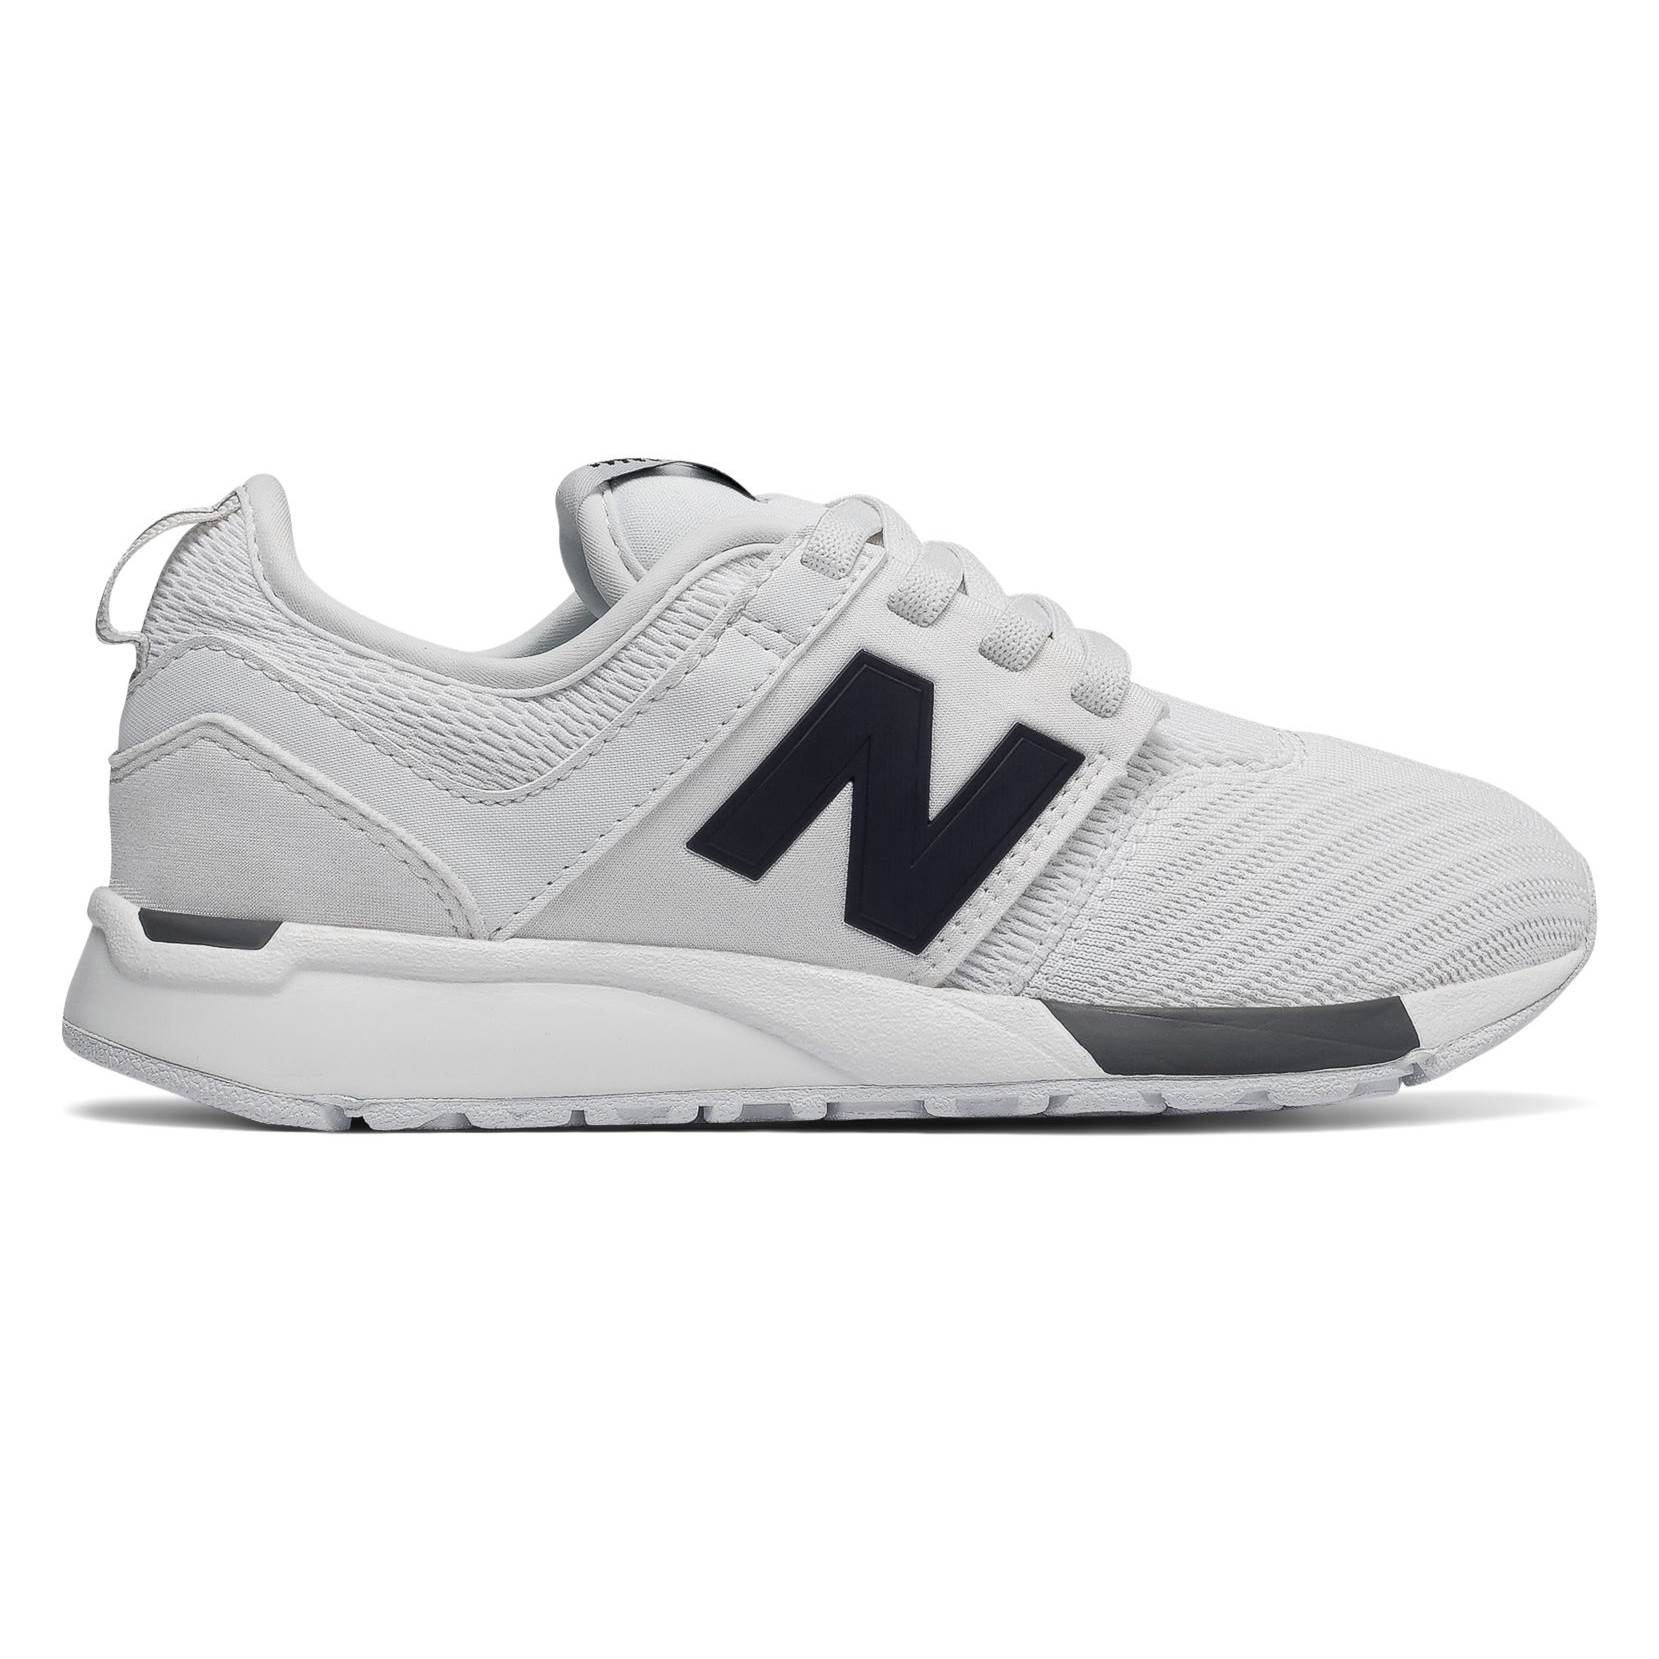 247 OUTDOOR PACK - CALZATURE - Sneakers & Tennis shoes basse New Balance dWKAIiBhZM